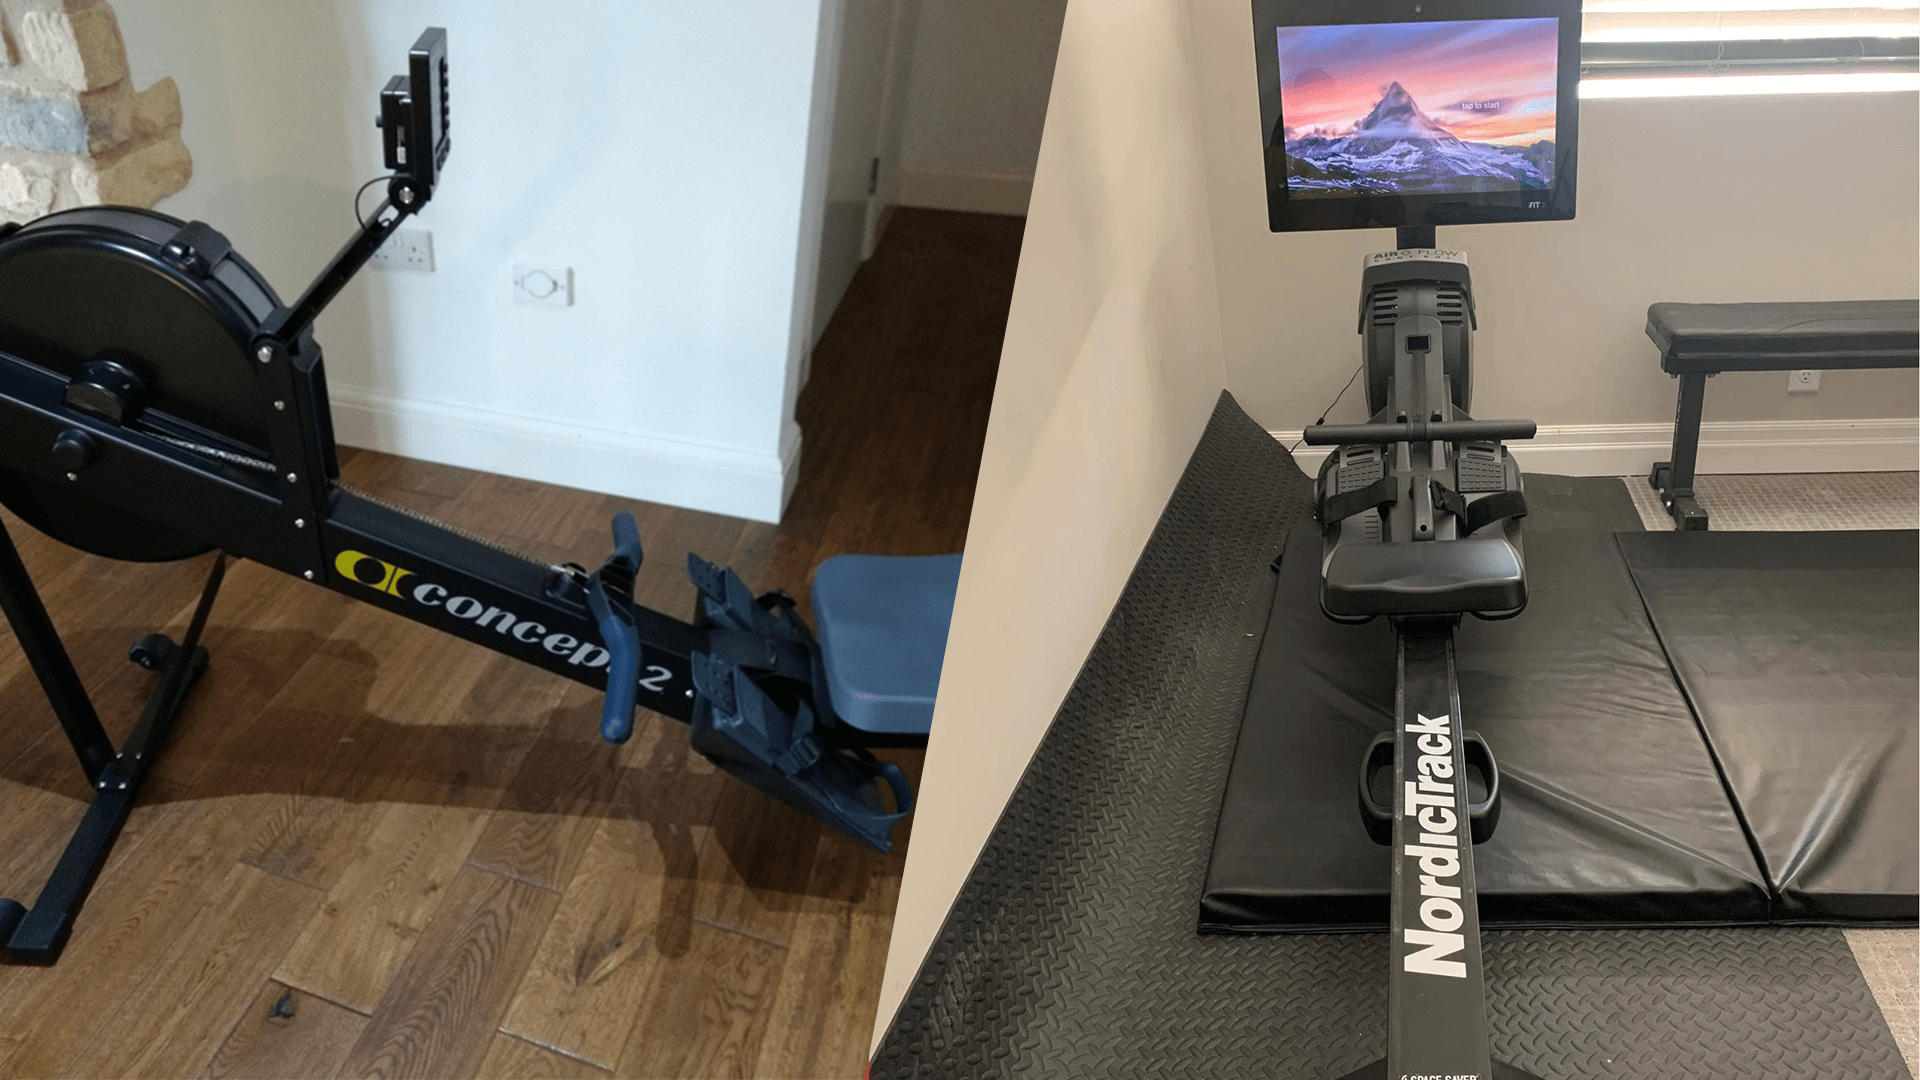 Comparing the NordicTrack RW900 and the Concept 2 Model D